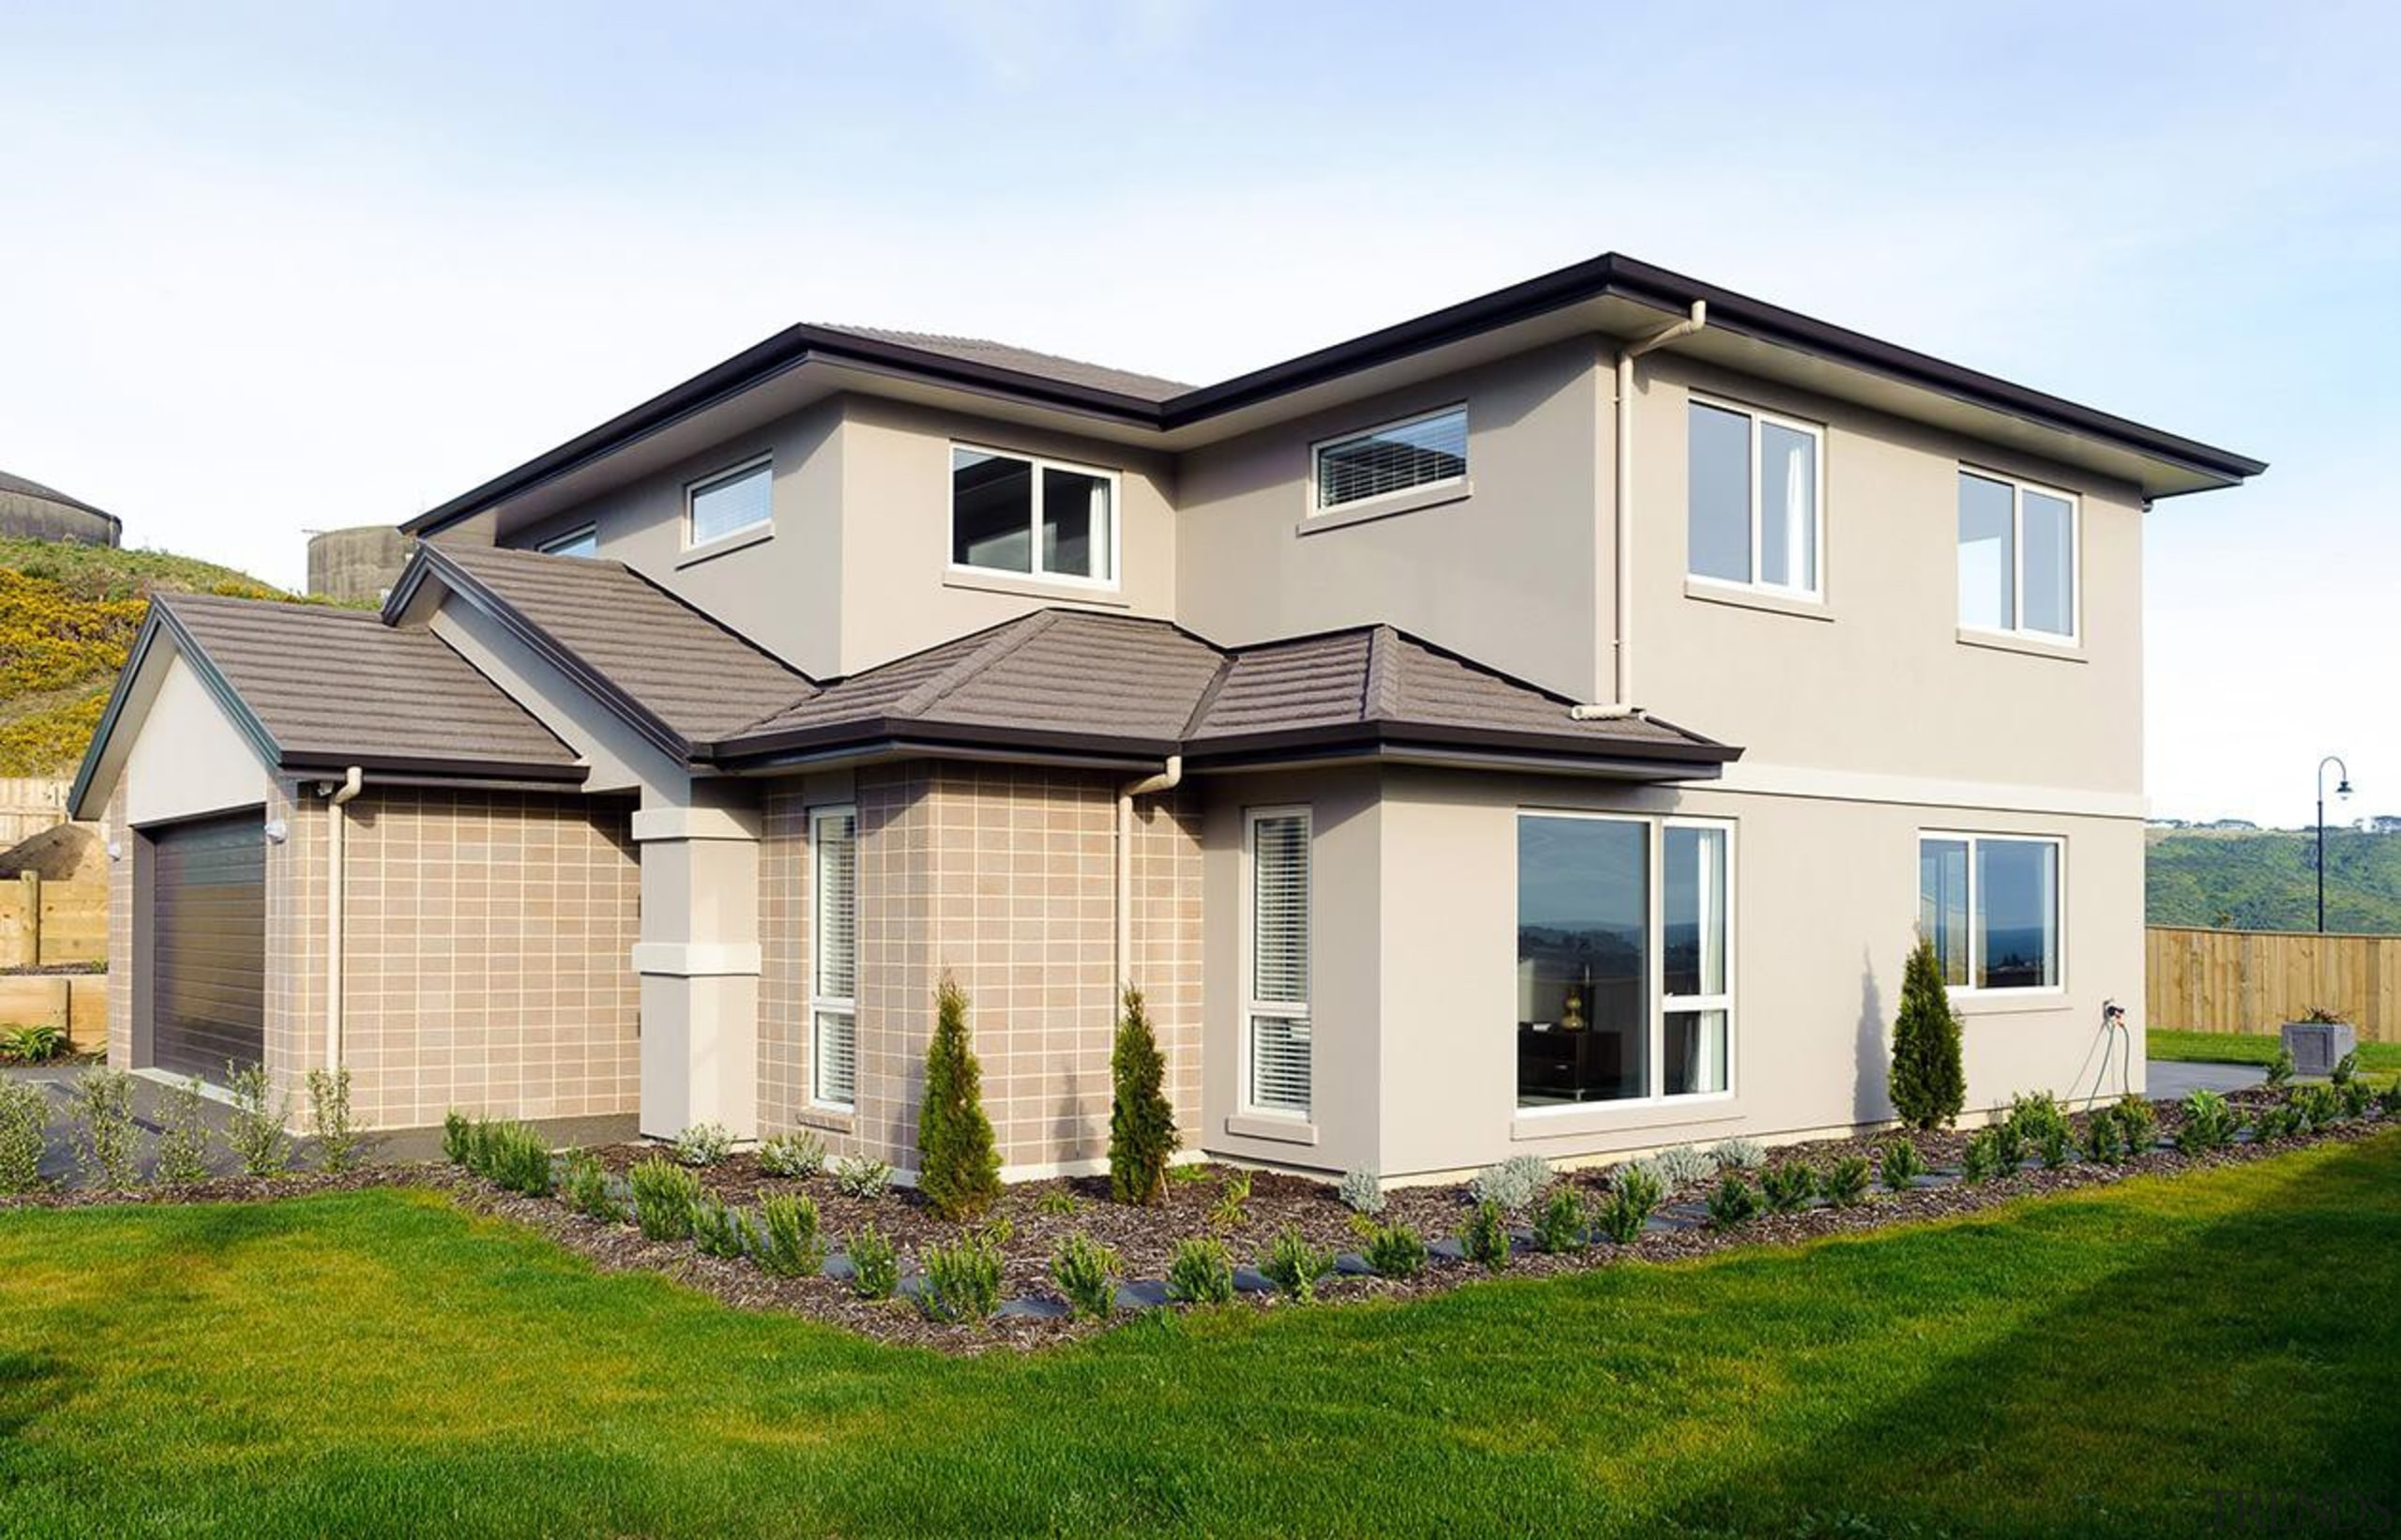 For more information, please visit www.gjgardner.co.nz building, cottage, elevation, estate, facade, home, house, neighbourhood, property, real estate, residential area, roof, siding, window, white